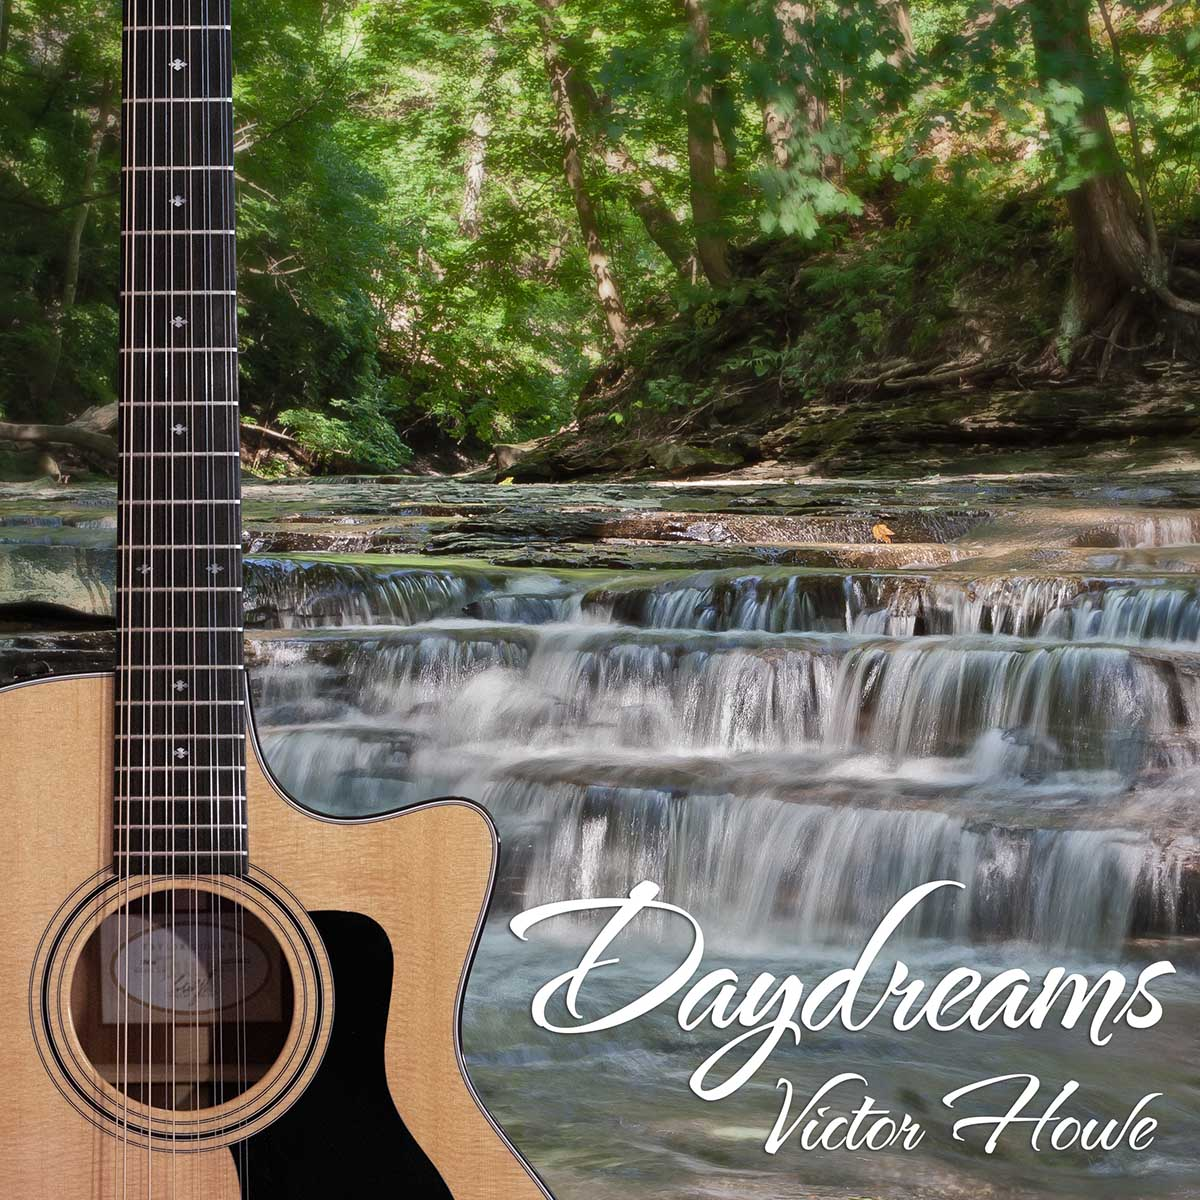 Daydreams by Victor Howe 12-string Acoustic Guitar Instrumentals